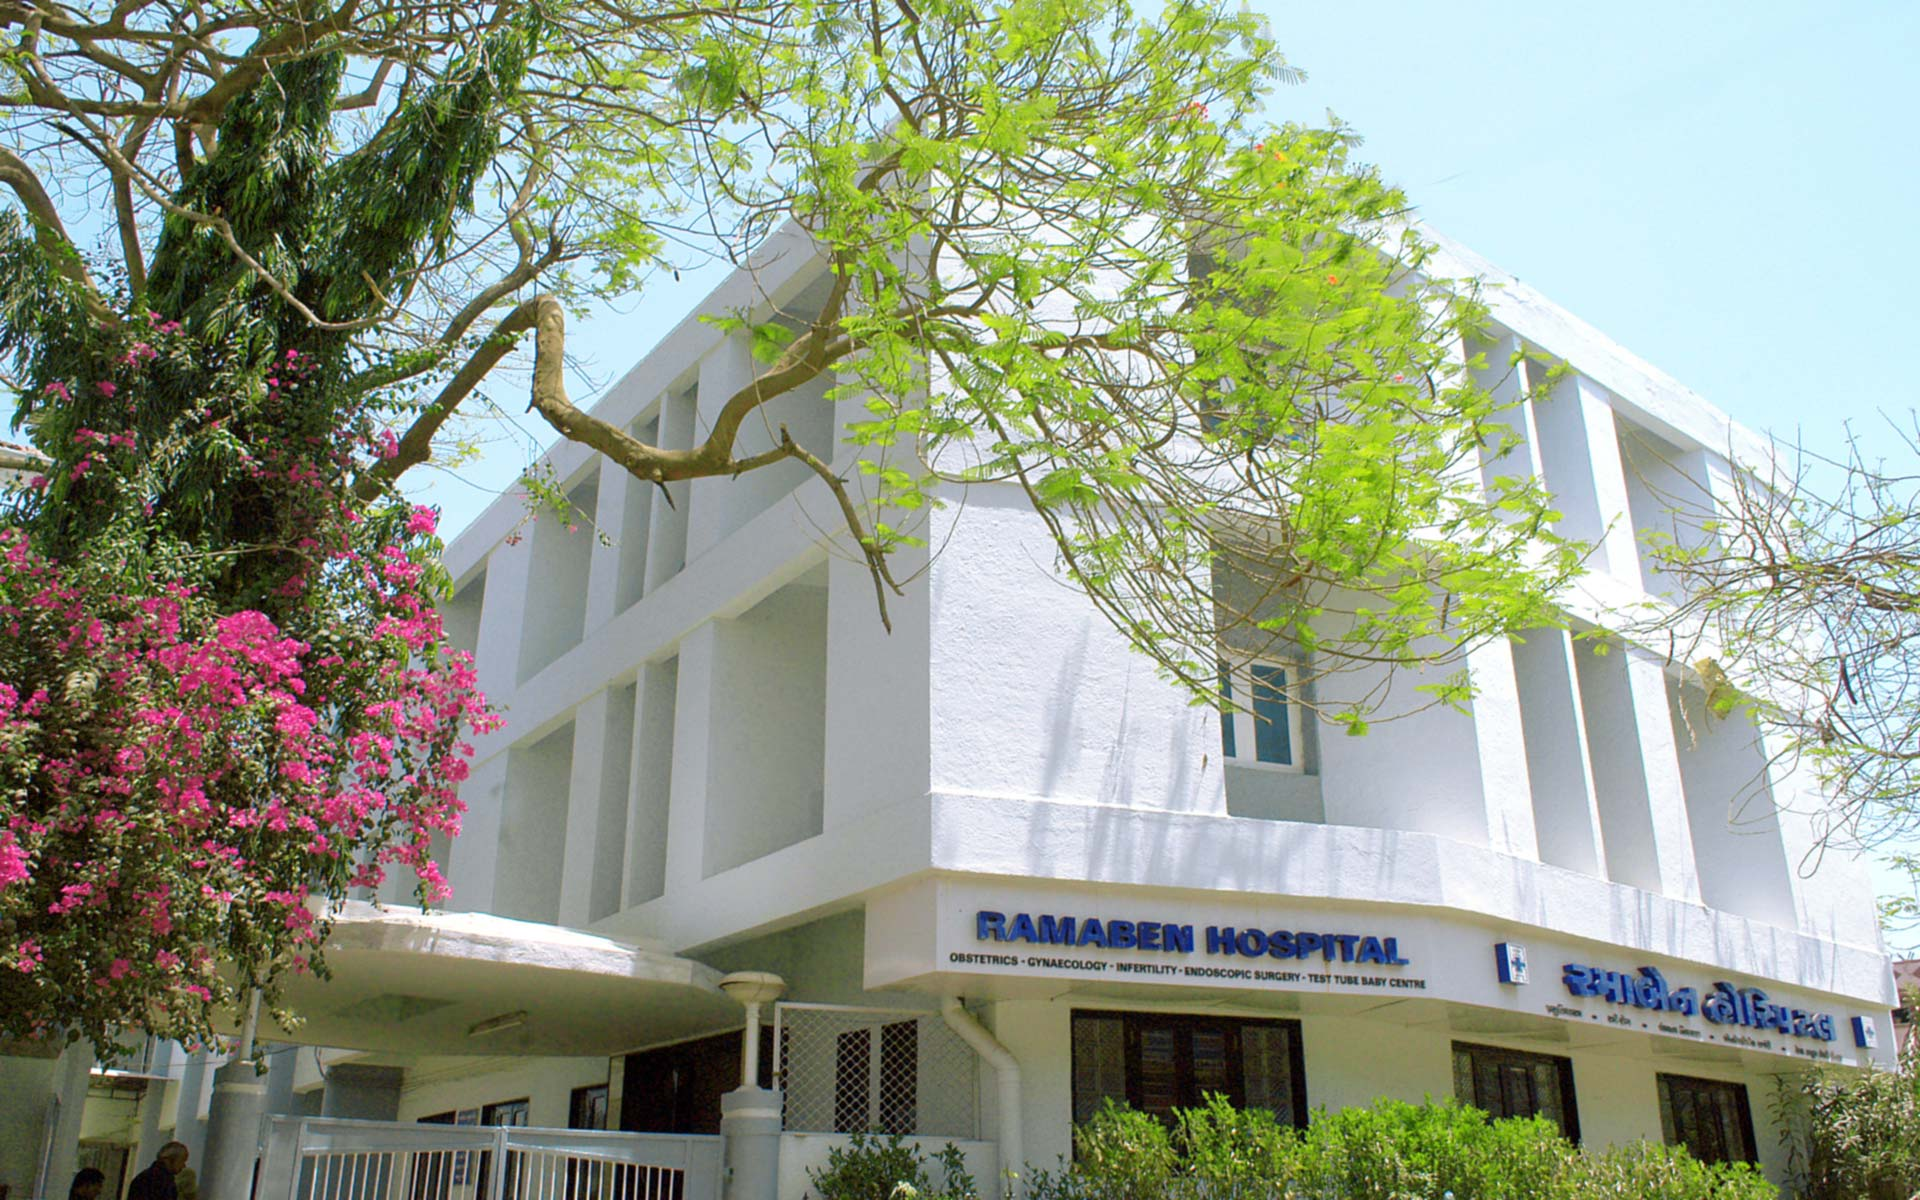 RAMABEN HOSPITAL BUILDING